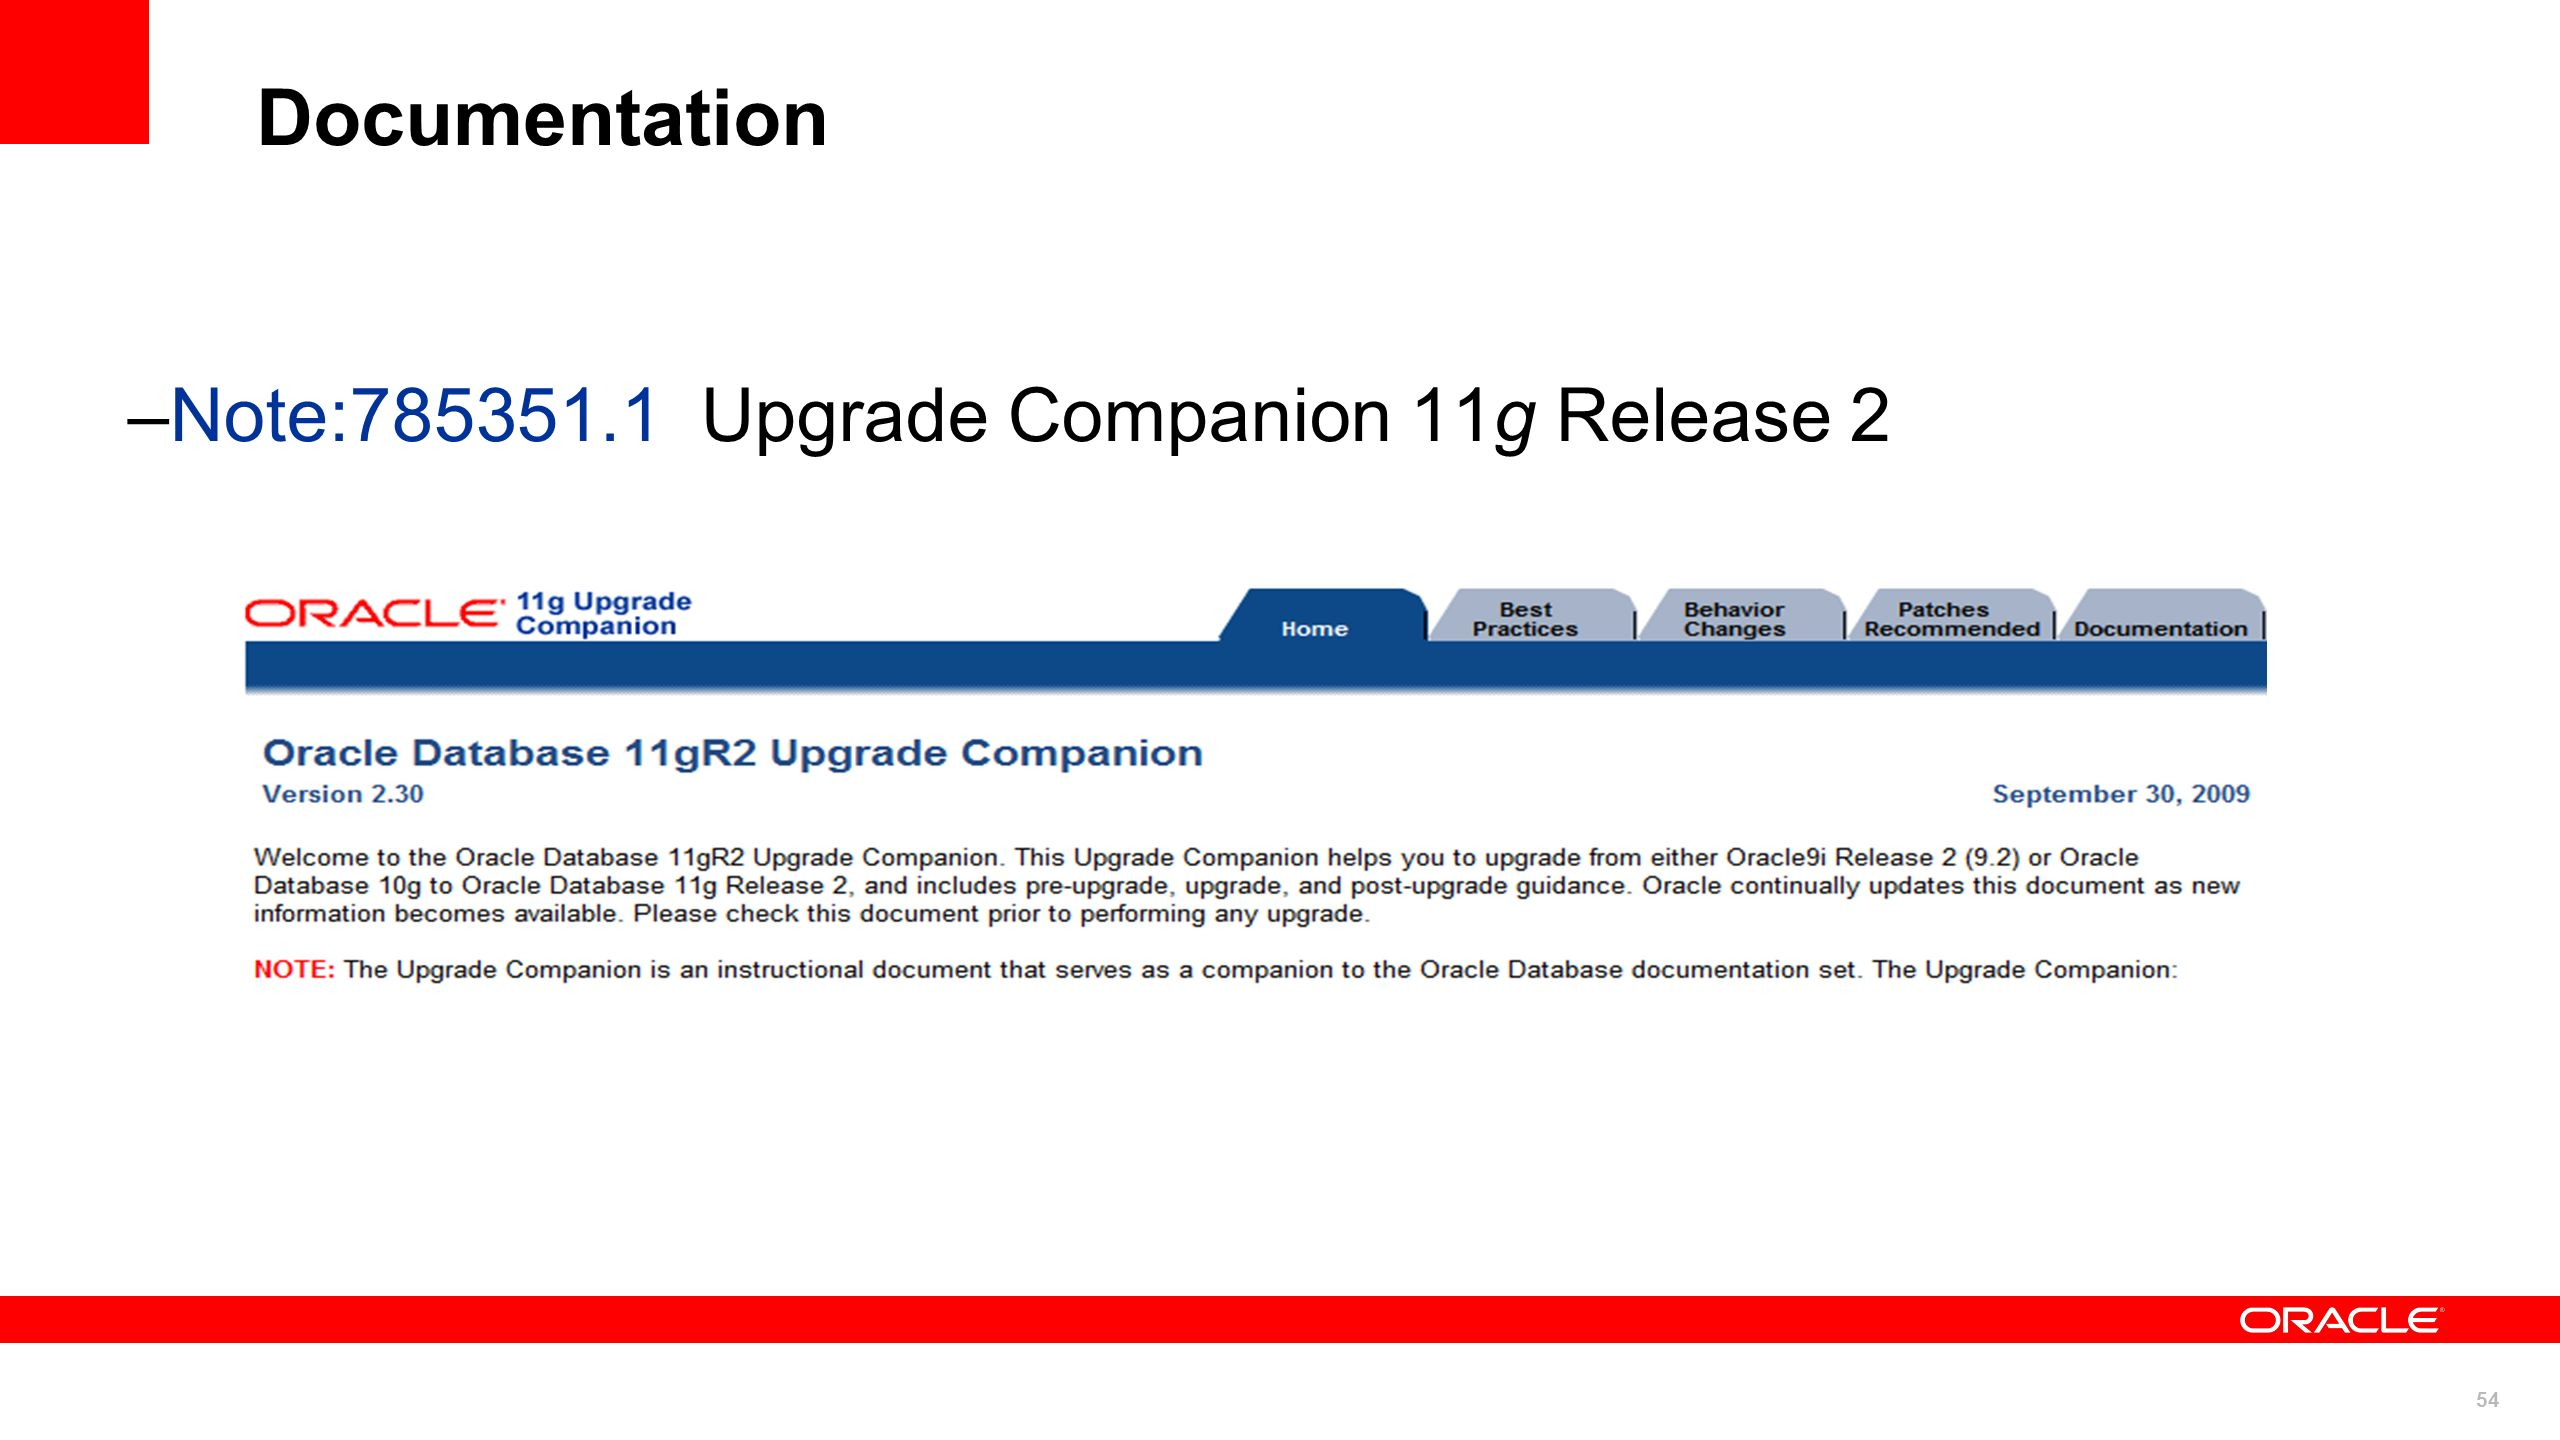 Documentation Note:785351.1 Upgrade Companion 11g Release 2 54